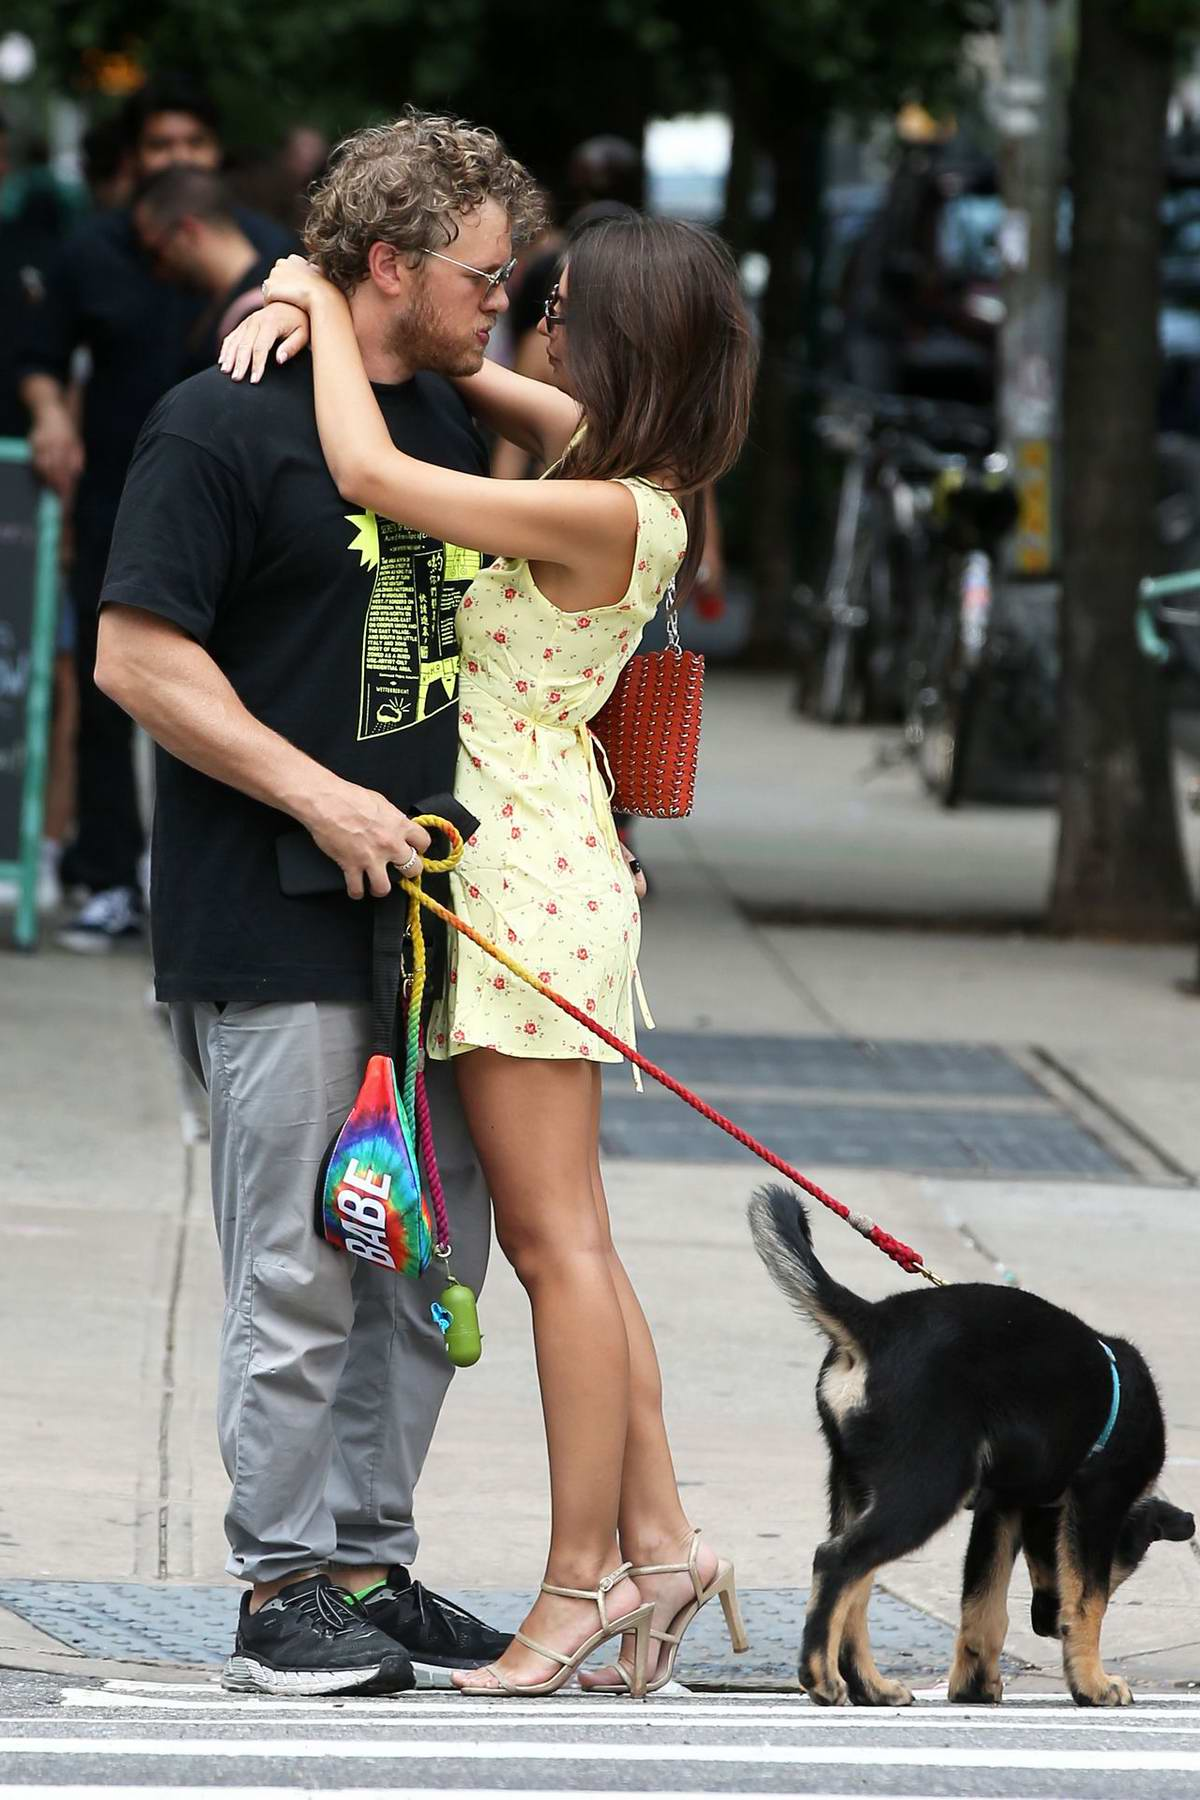 Emily Ratajkowski and Sebastian Bear-McClard share a kiss while out for a stroll with their dog in New York City